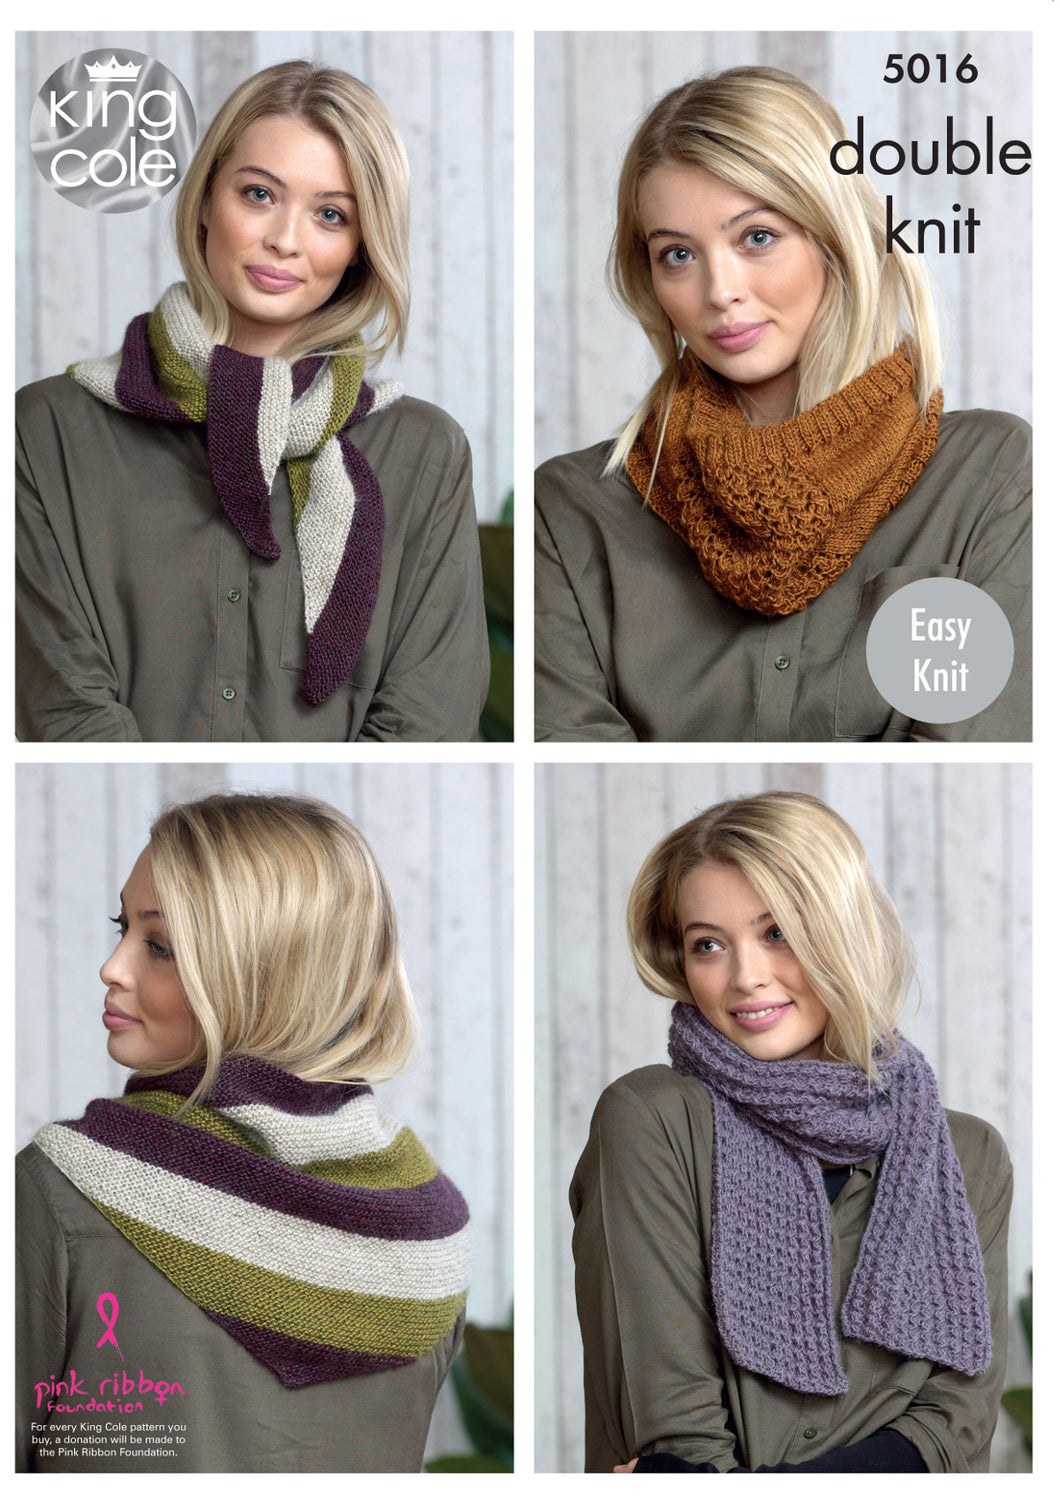 http://images.esellerpro.com/2278/I/146/002/king-cole-double-knit-knitting-pattern-ladies-womens-shawl-scarf-snood-5016.jpg